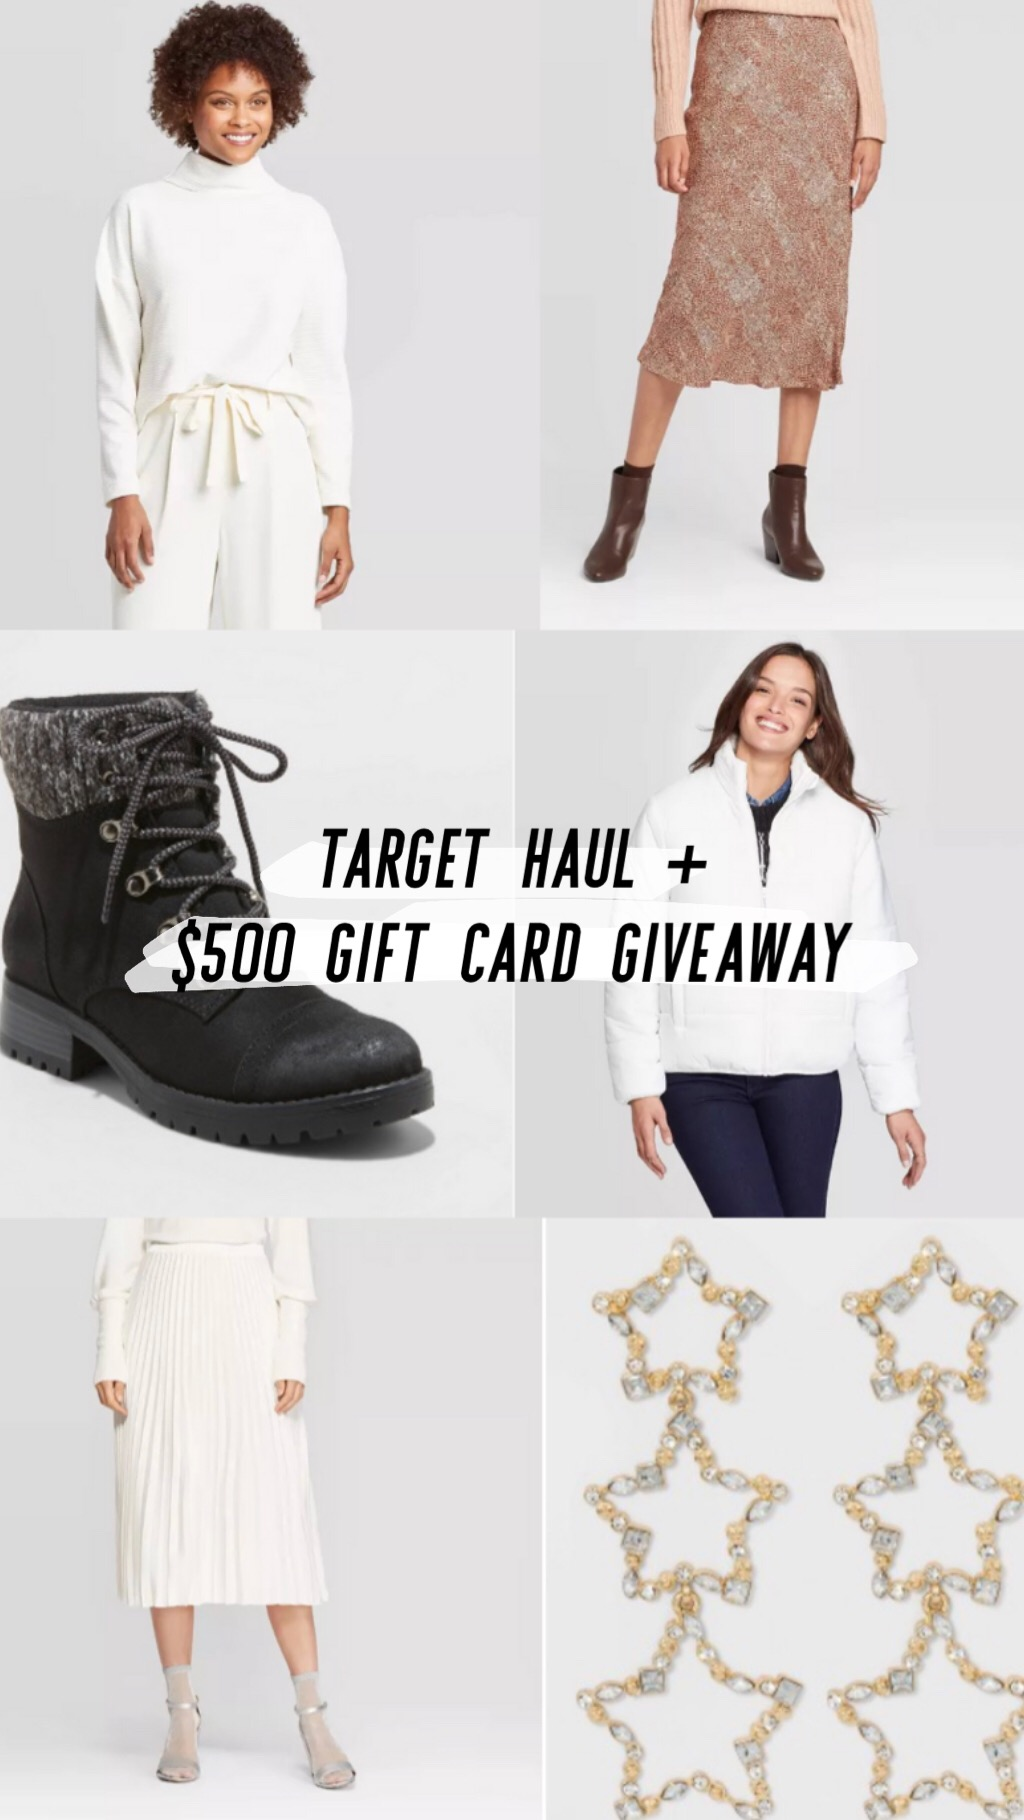 Target Haul + $500 Gift Card Giveaway!